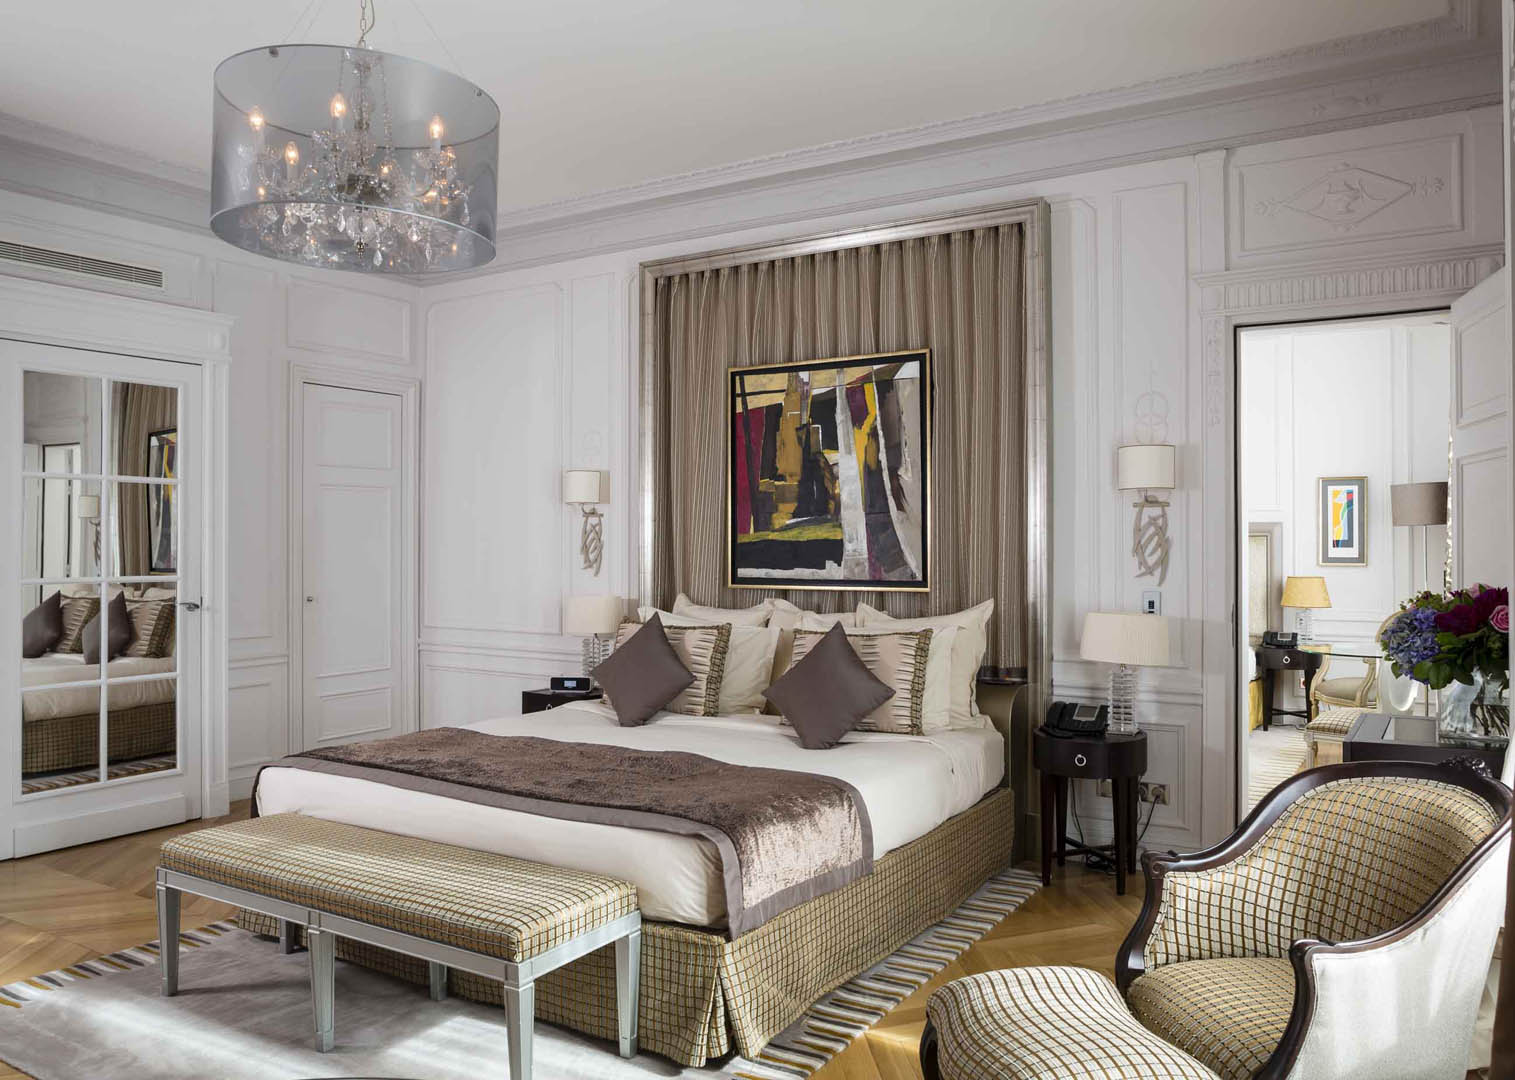 385/Hotel Majestic Appartements/Photos/Appartements/Two Bedrooms/Two_Bedroom_2-_CMajestic_Hotel-Spa_.jpg